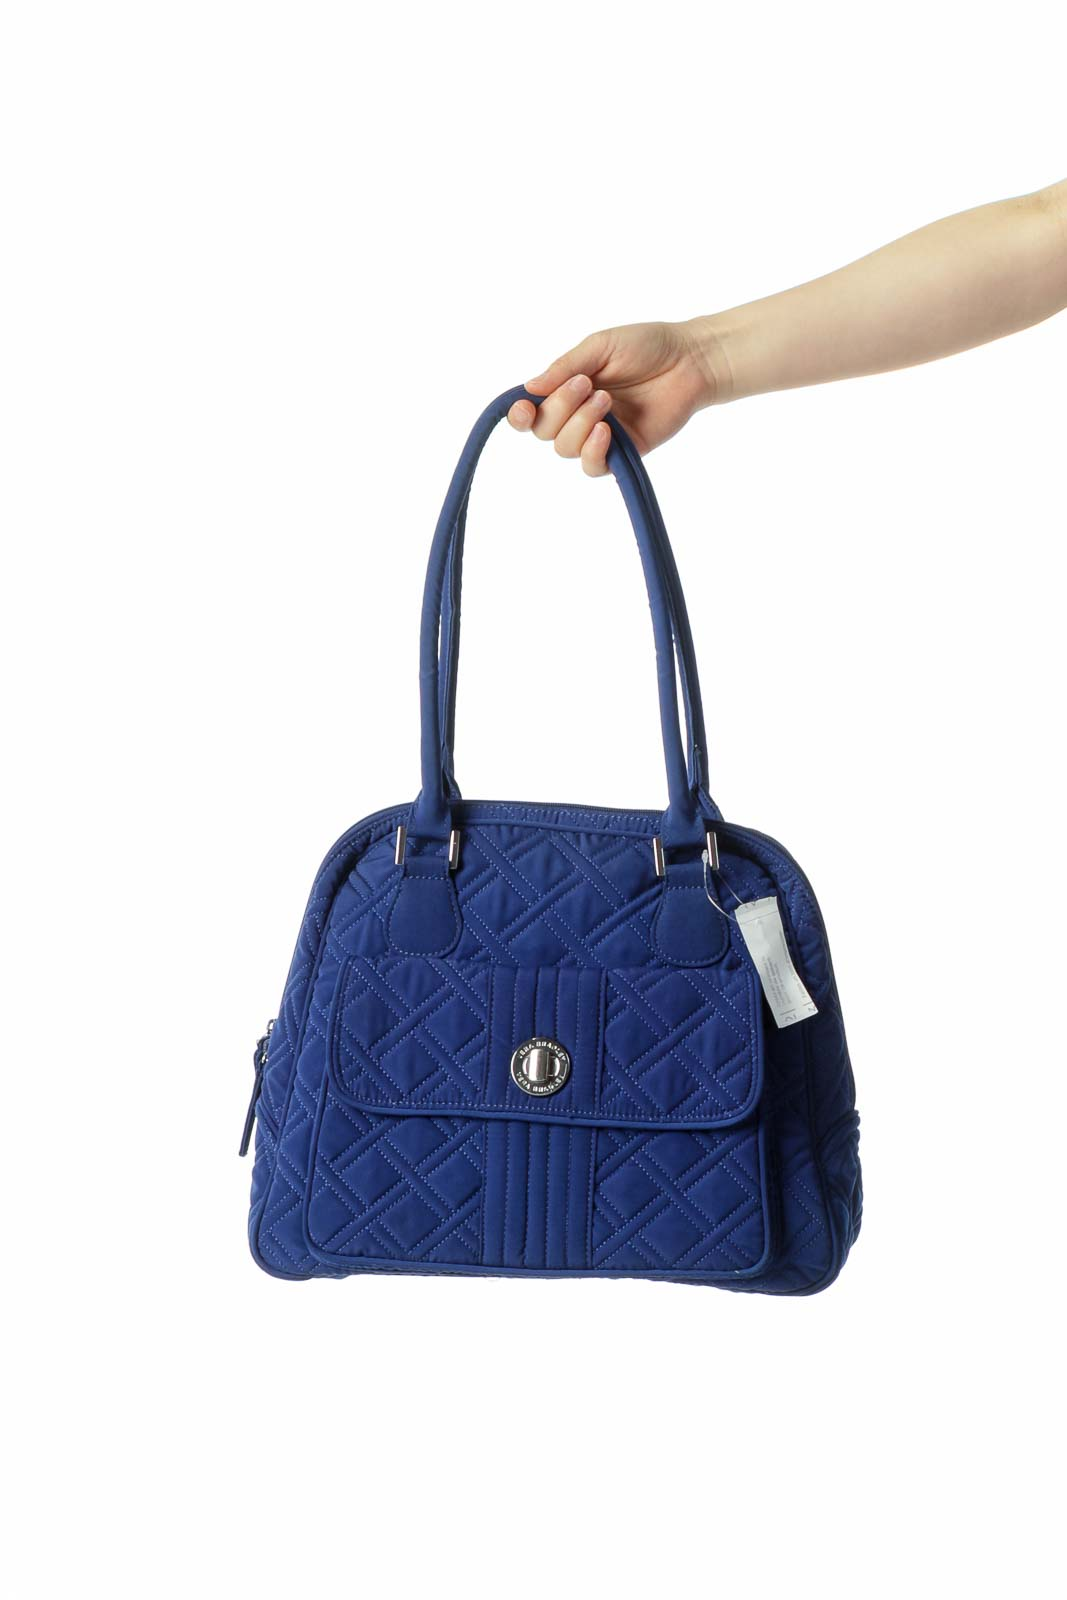 Royal Blue Quilted Outside Pocket Zipper Shoulder Bag